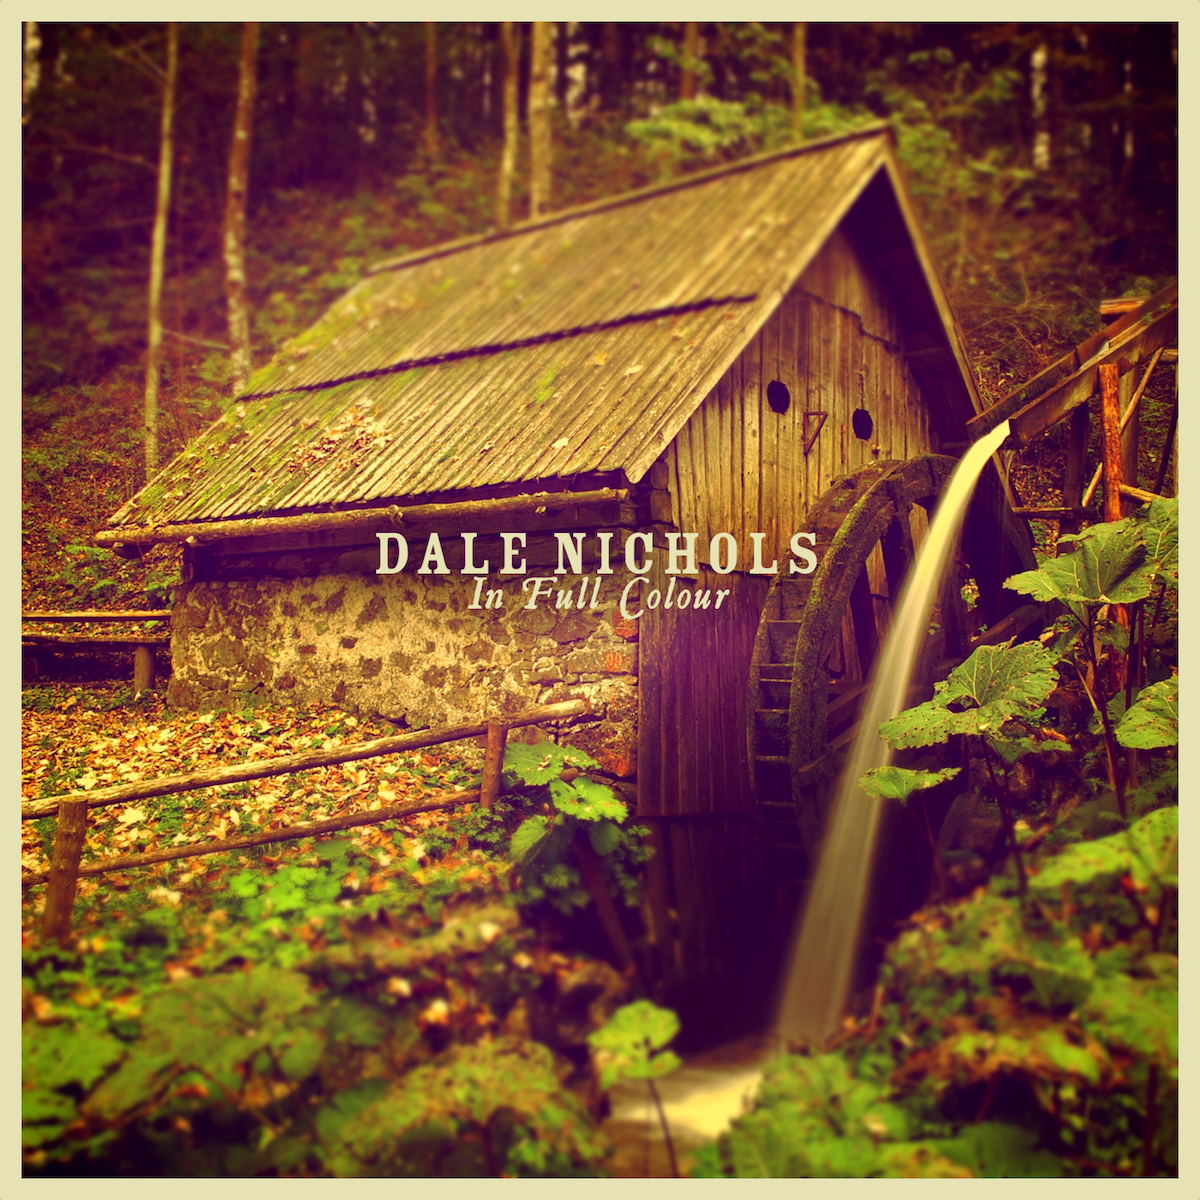 In Full Colour - In Full Colour is the debut EP from Dale Nichols. These piano-based recordings illustrate Dale's evocative style, leaving layers of emotion and melody into beautiful soundscapes for an intimate, cinematic feel.